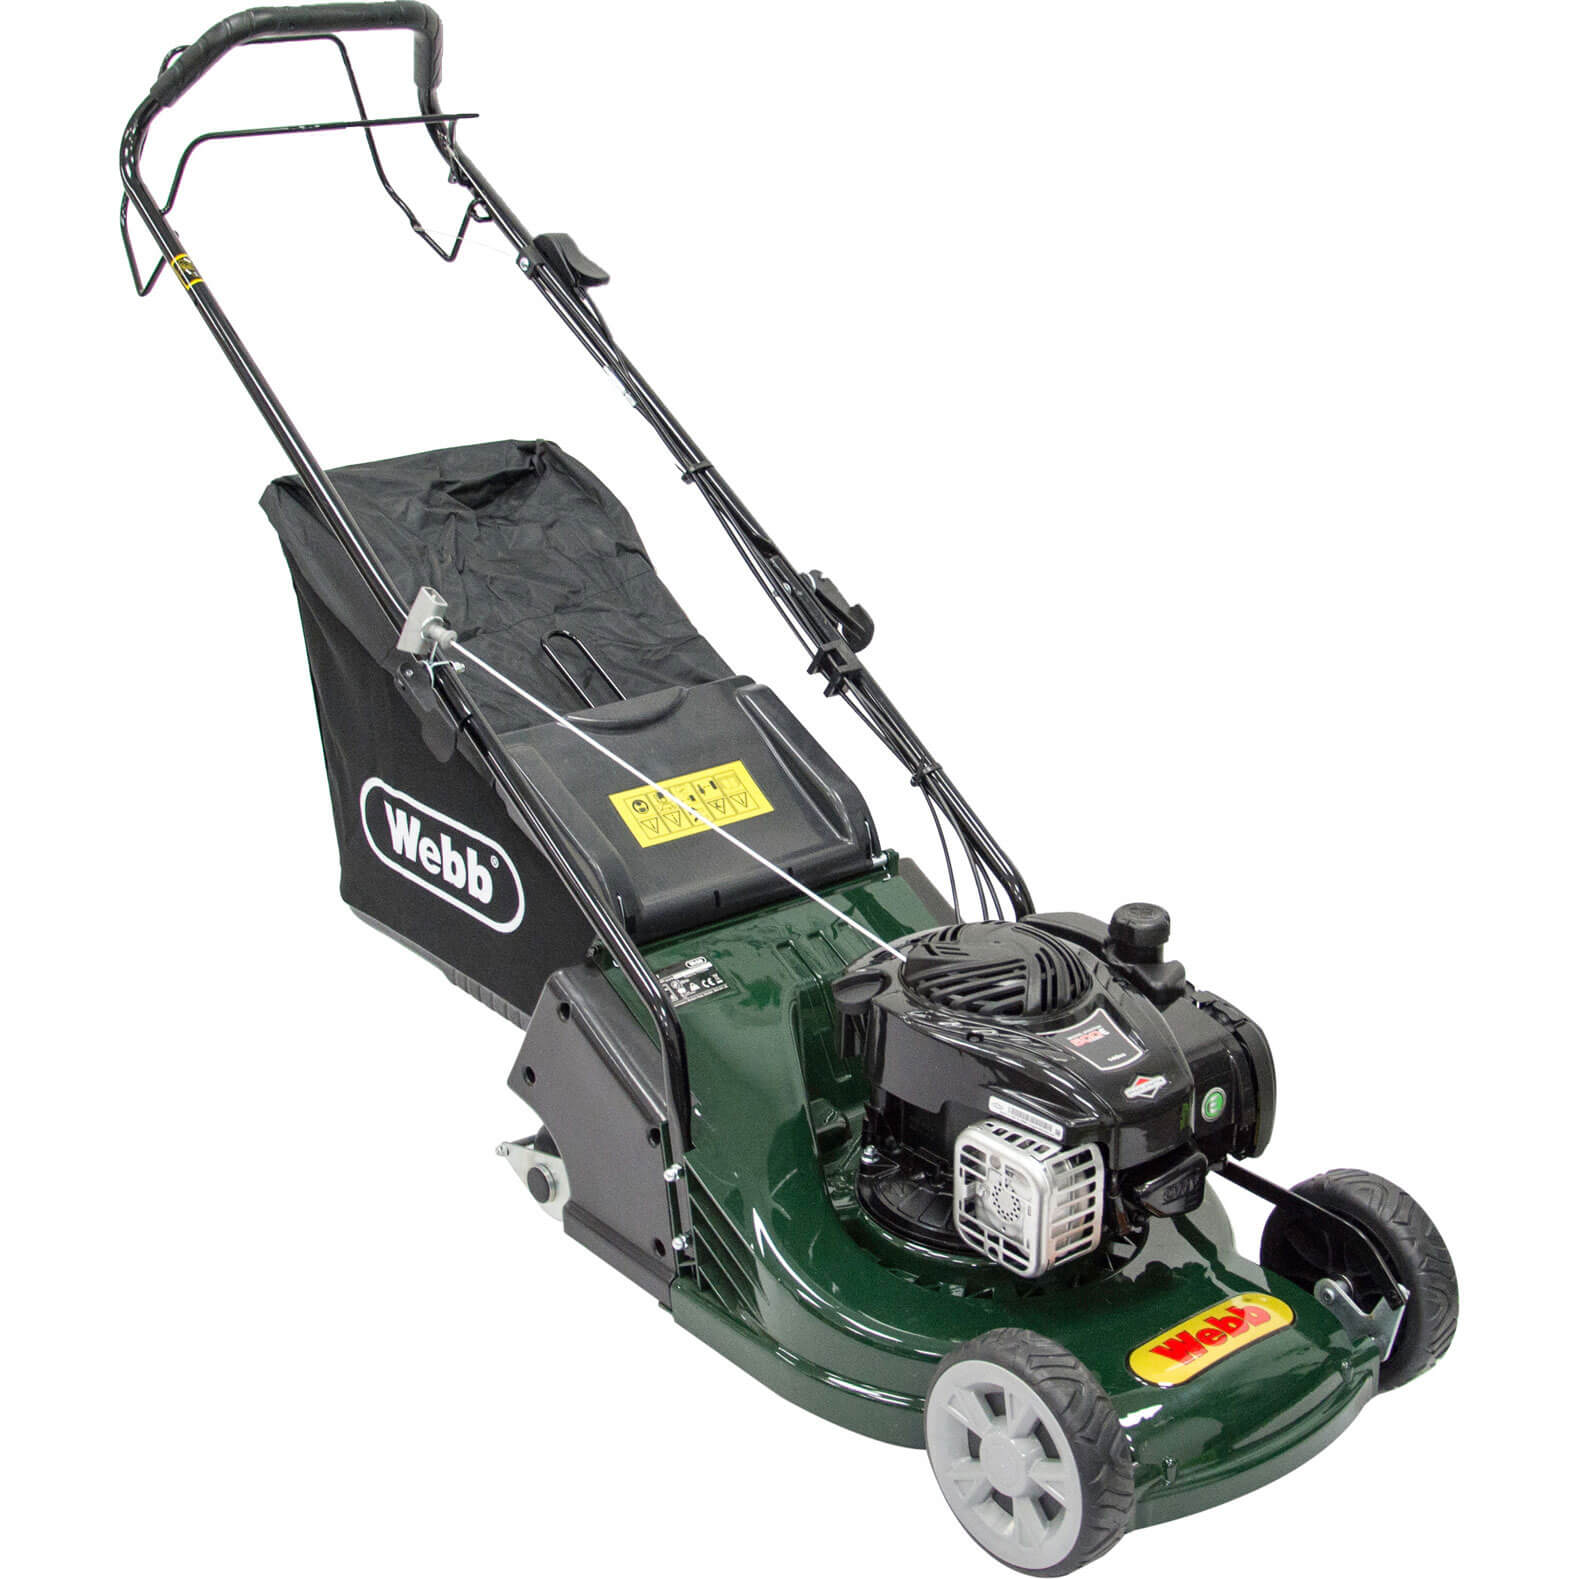 Image of Webb WERR17SP Self Propelled Petrol Rotary Lawnmower 425mm